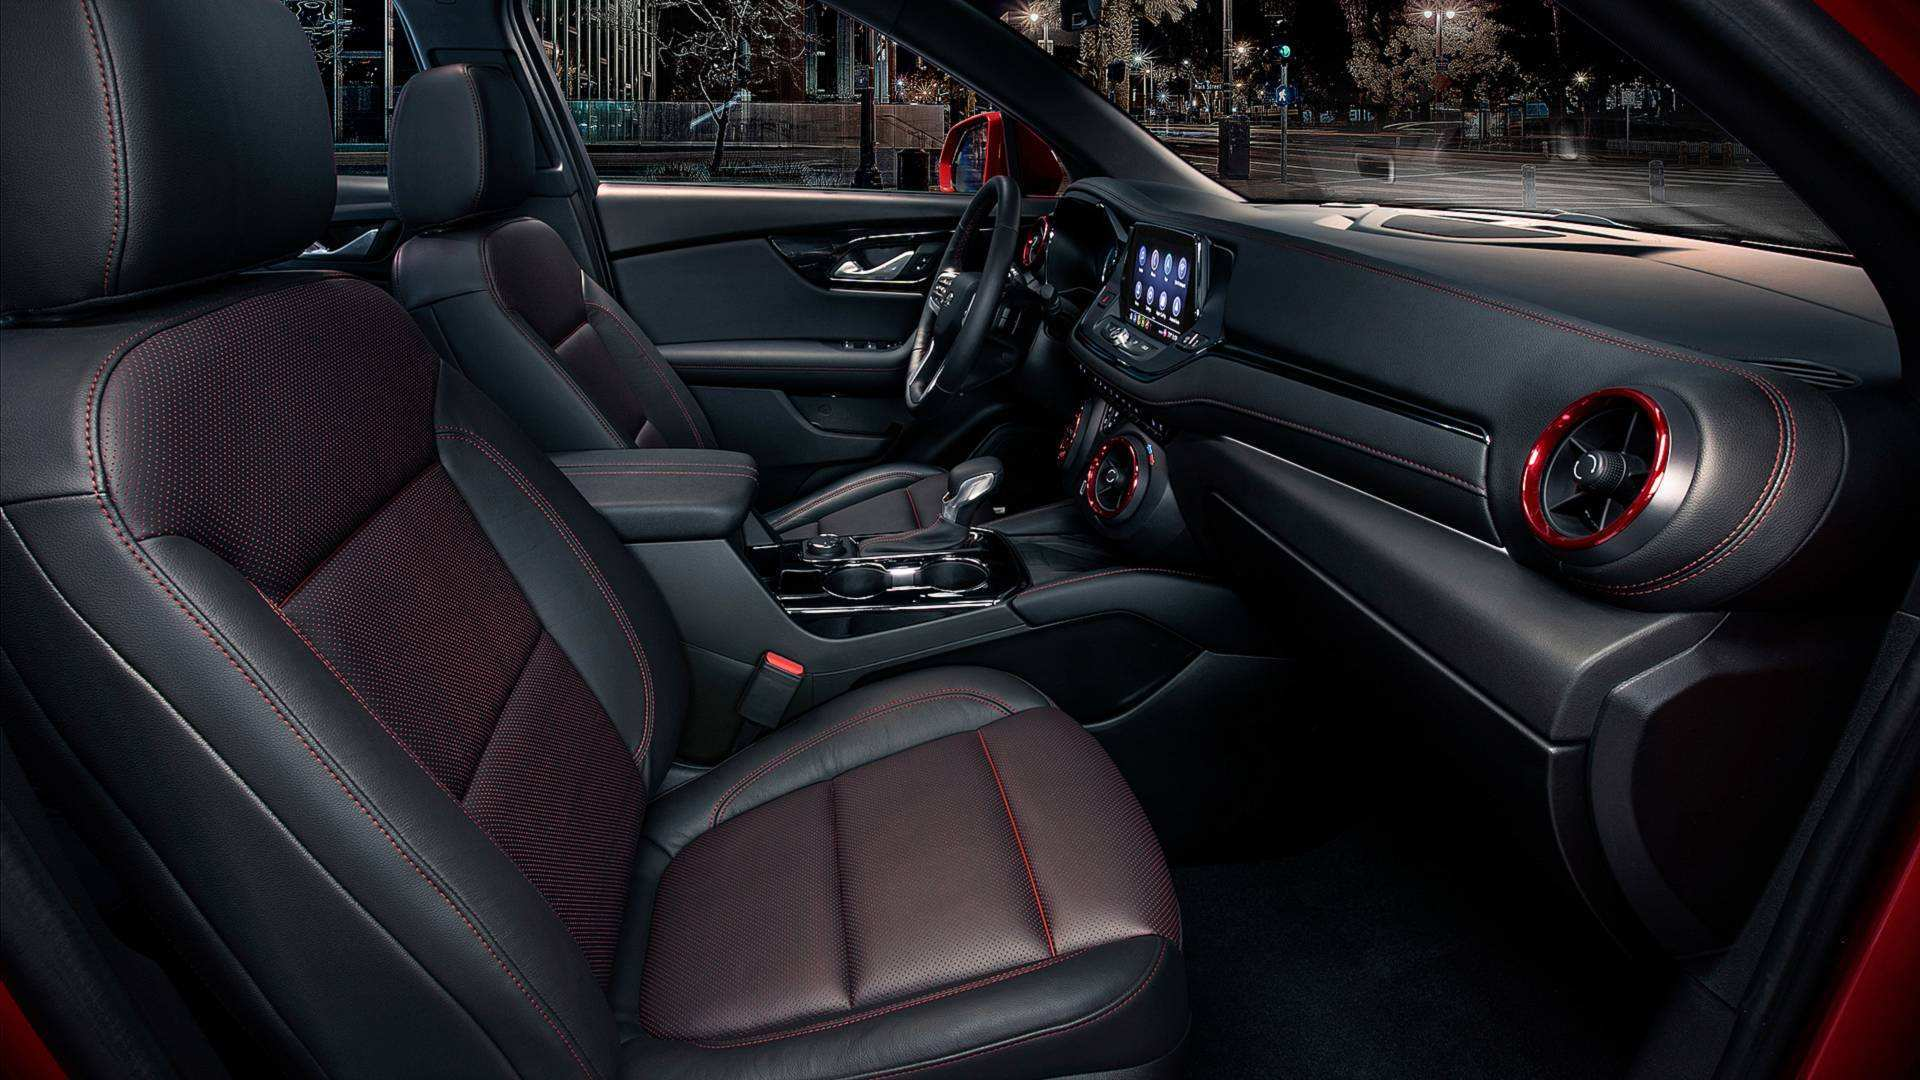 61 The Best Chevrolet Blazer 2020 Interior Price And Review